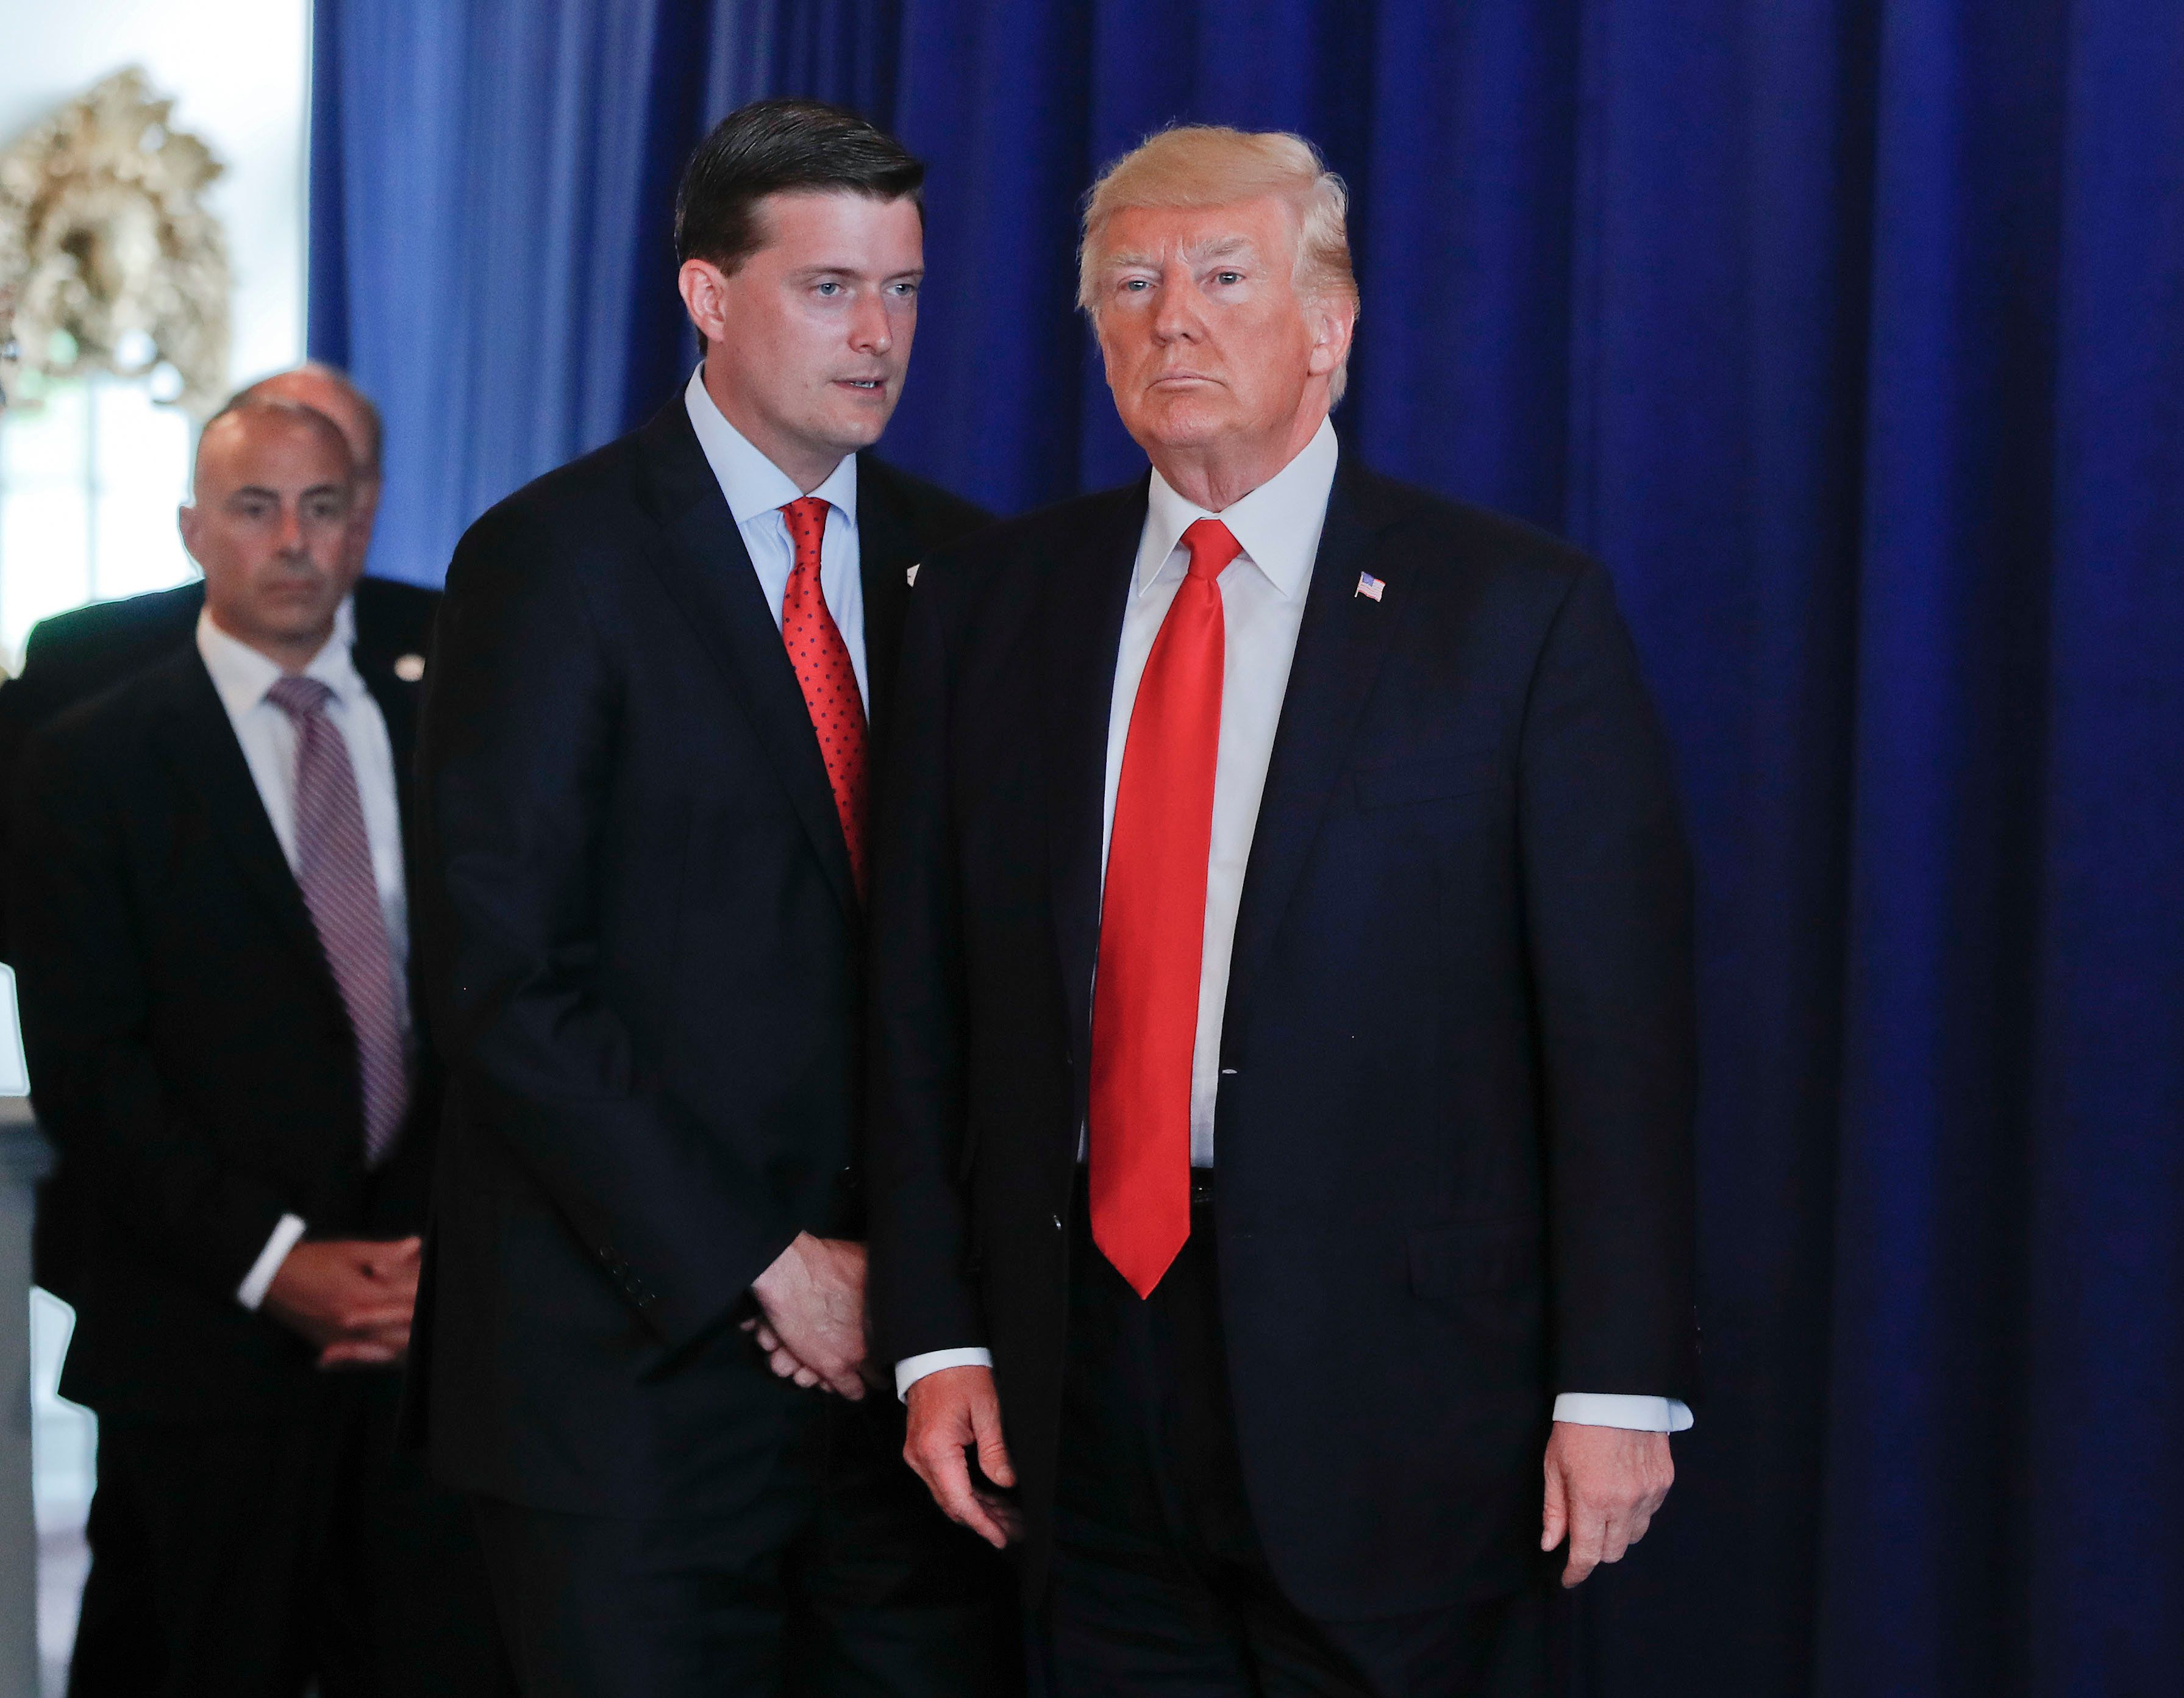 Rob Porter's Ex-Wife: Me Too Career Comebacks Need To Be 'Earned,' Not 'Given'